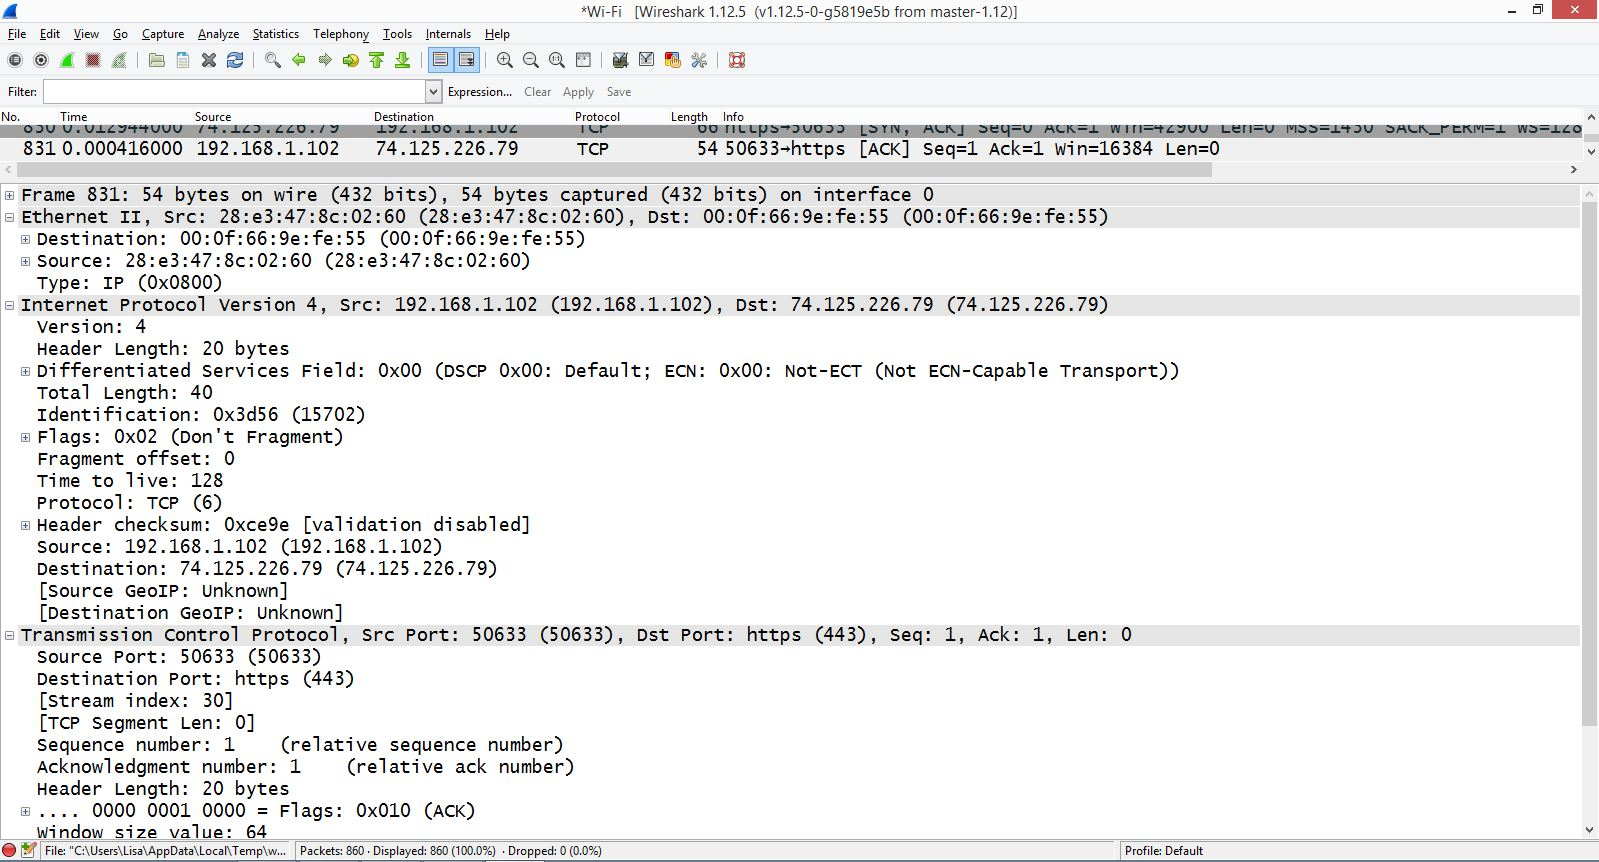 TechTip: Get Familiar with Wireshark, an Open-Source Packet